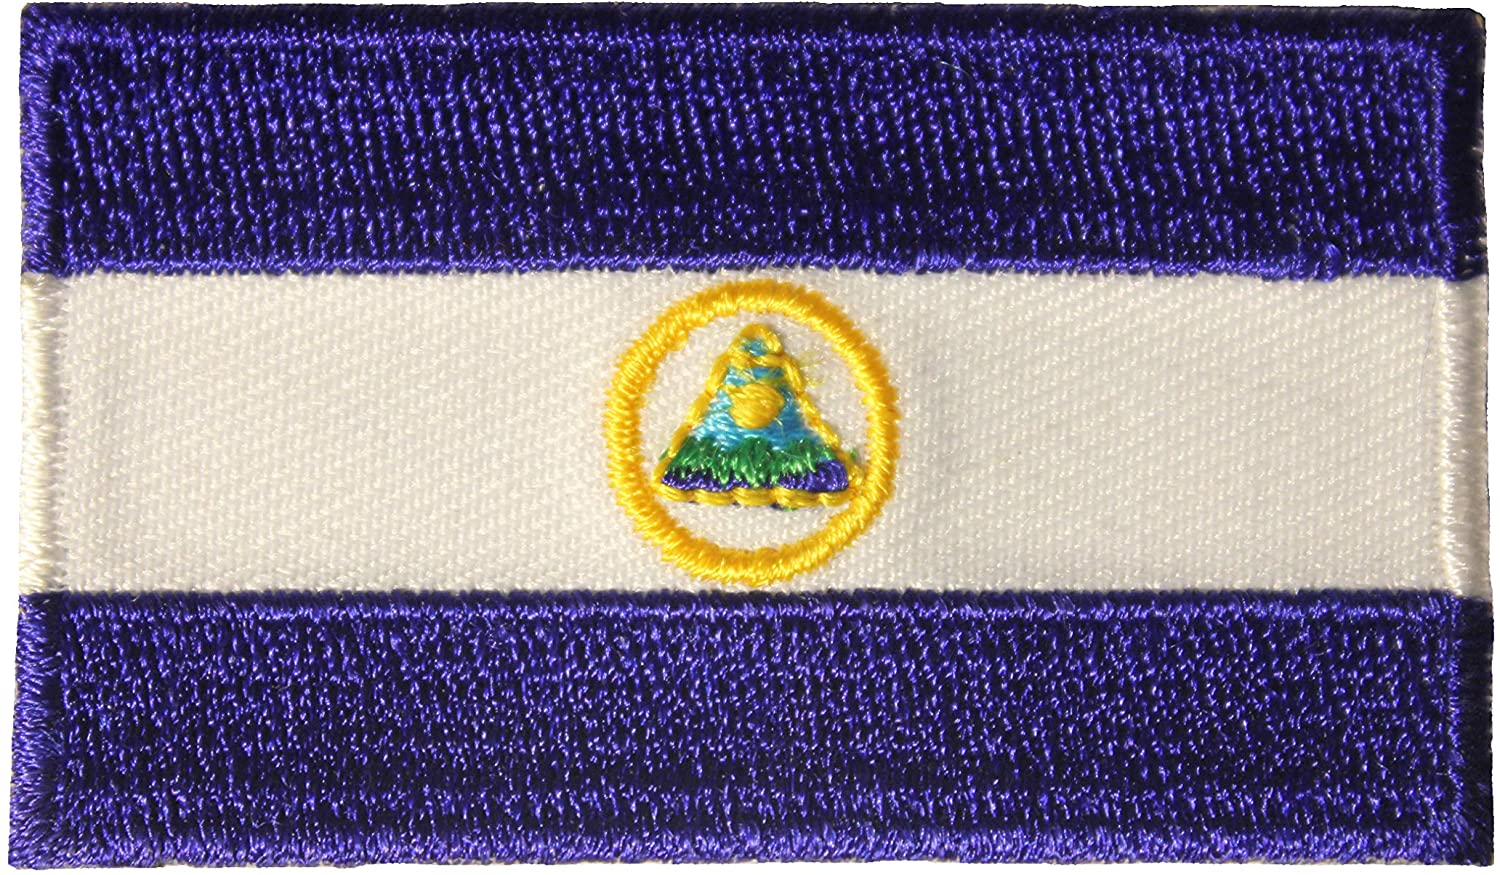 Nicaragua Country Flag Small Iron on Patch Crest Badge 1.5 X 2.5 Inches New